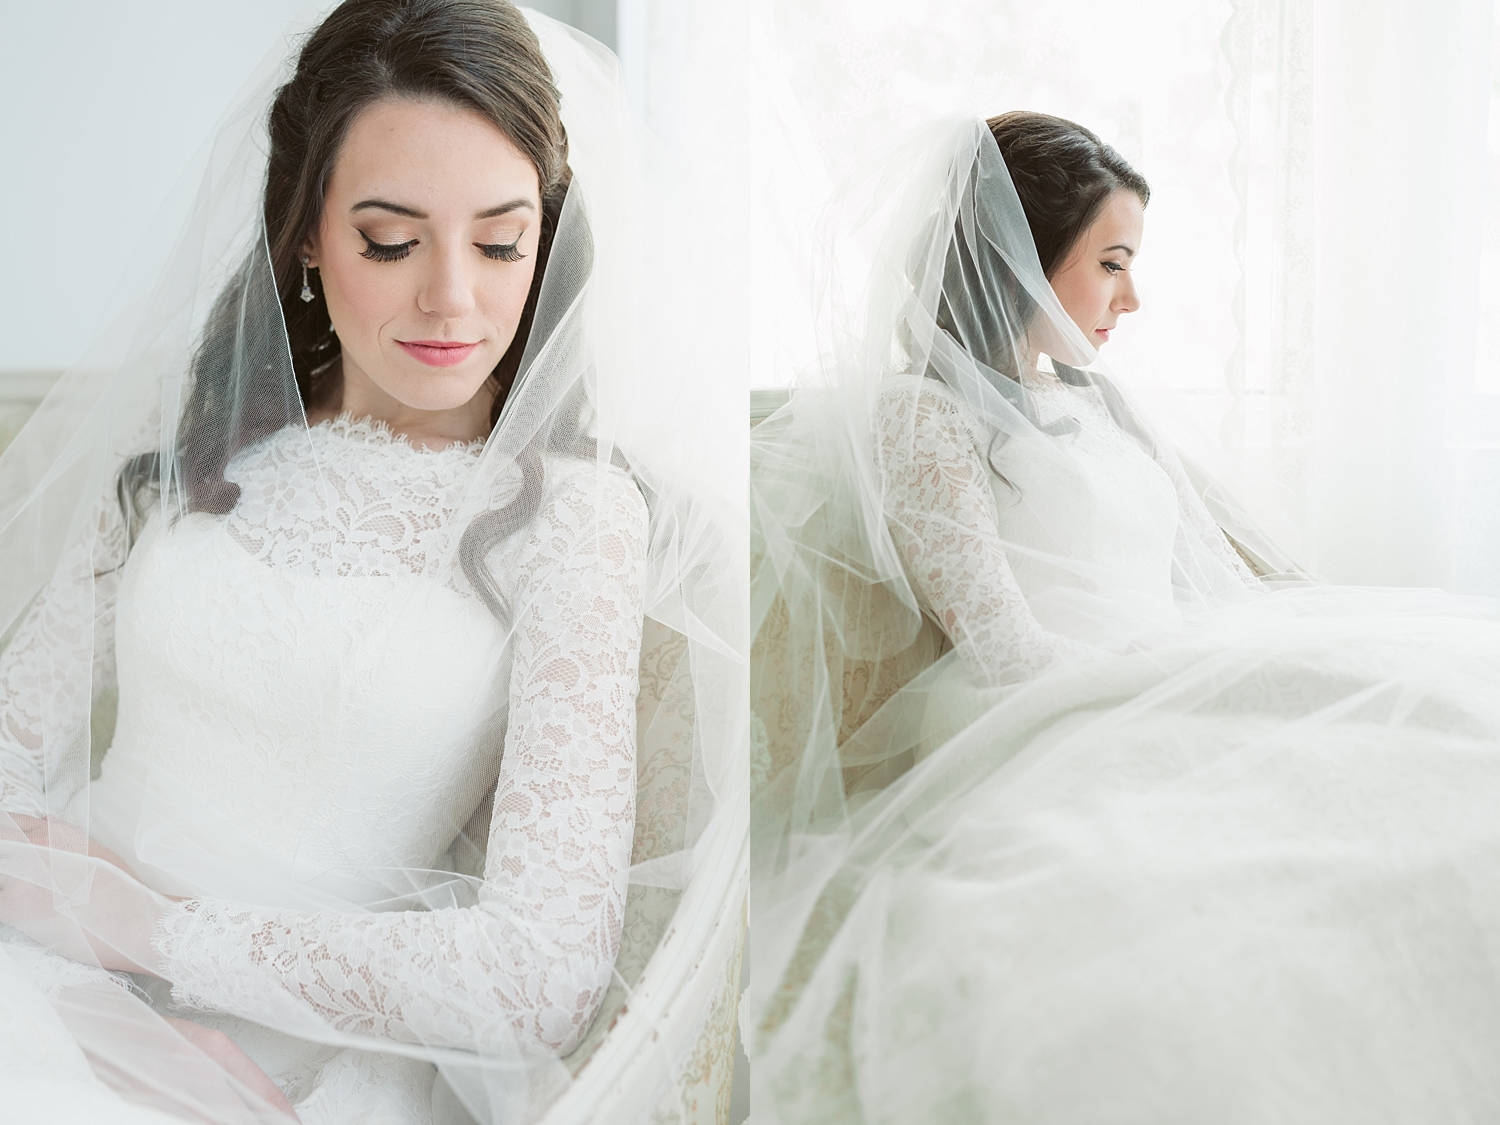 tampa_bridal_session_0013.jpg